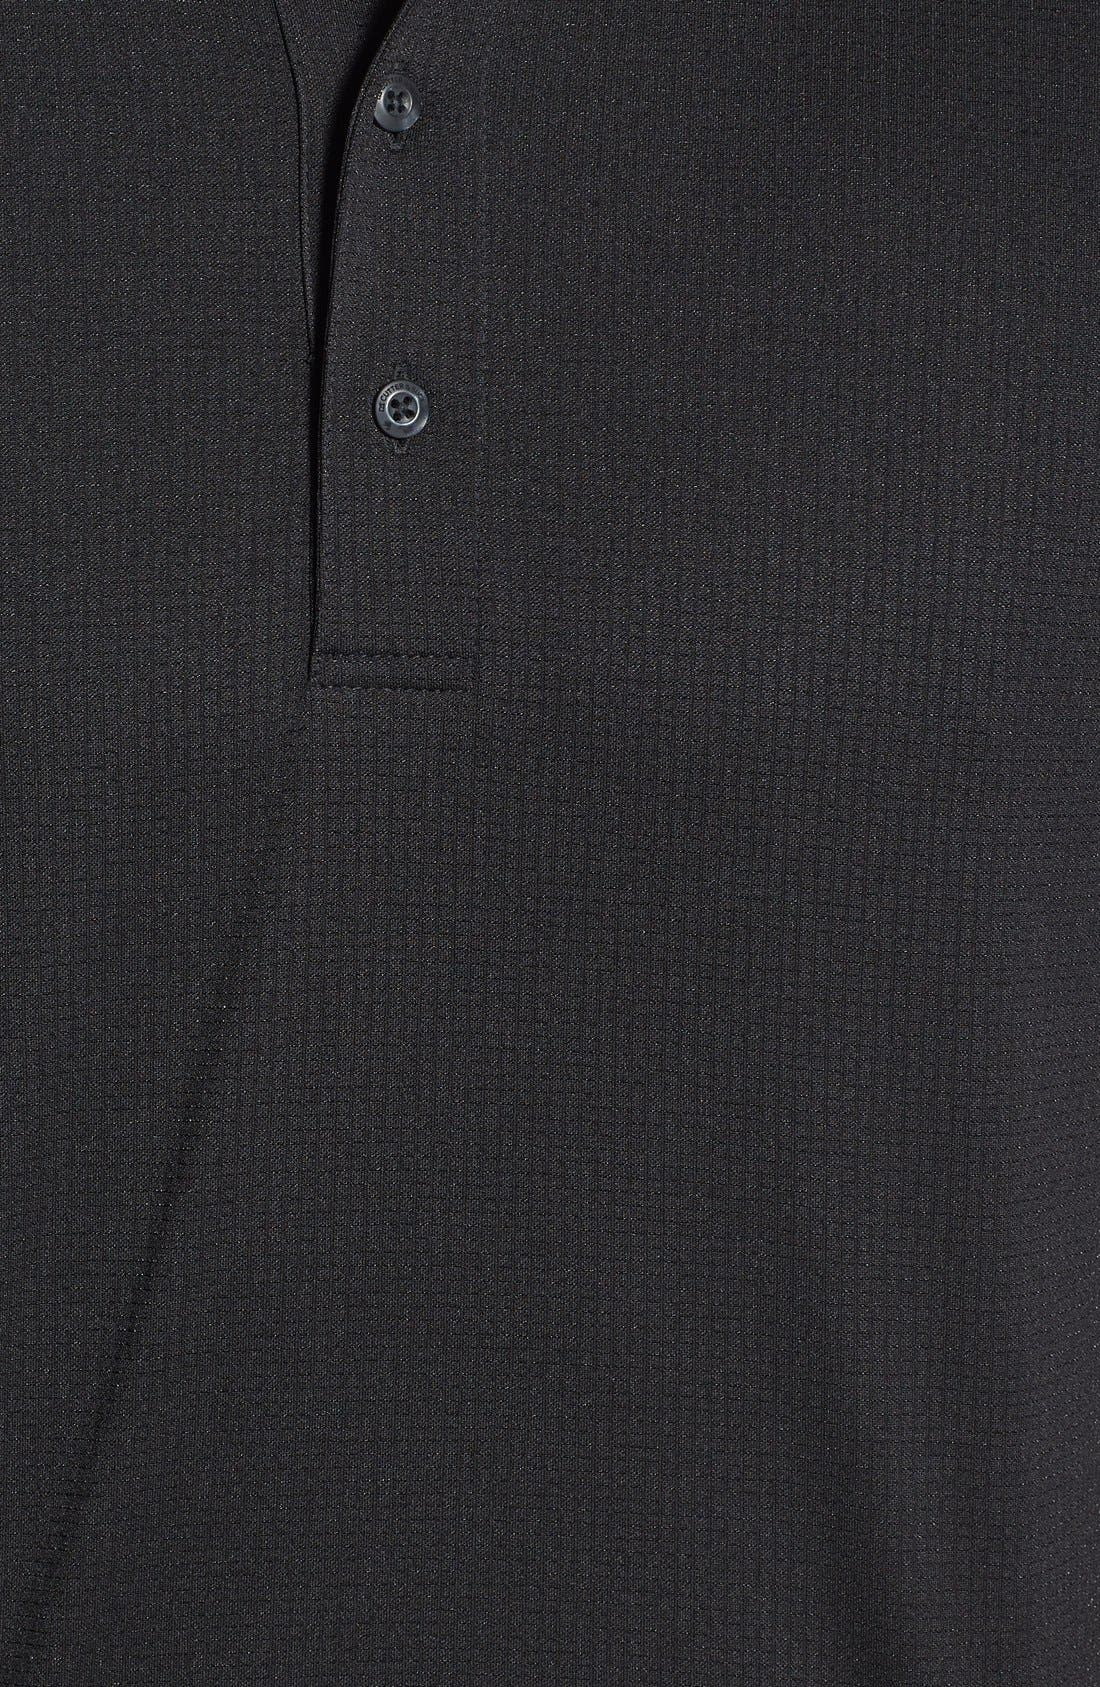 'Genre' DryTec Moisture Wicking Polo,                             Alternate thumbnail 3, color,                             BLACK